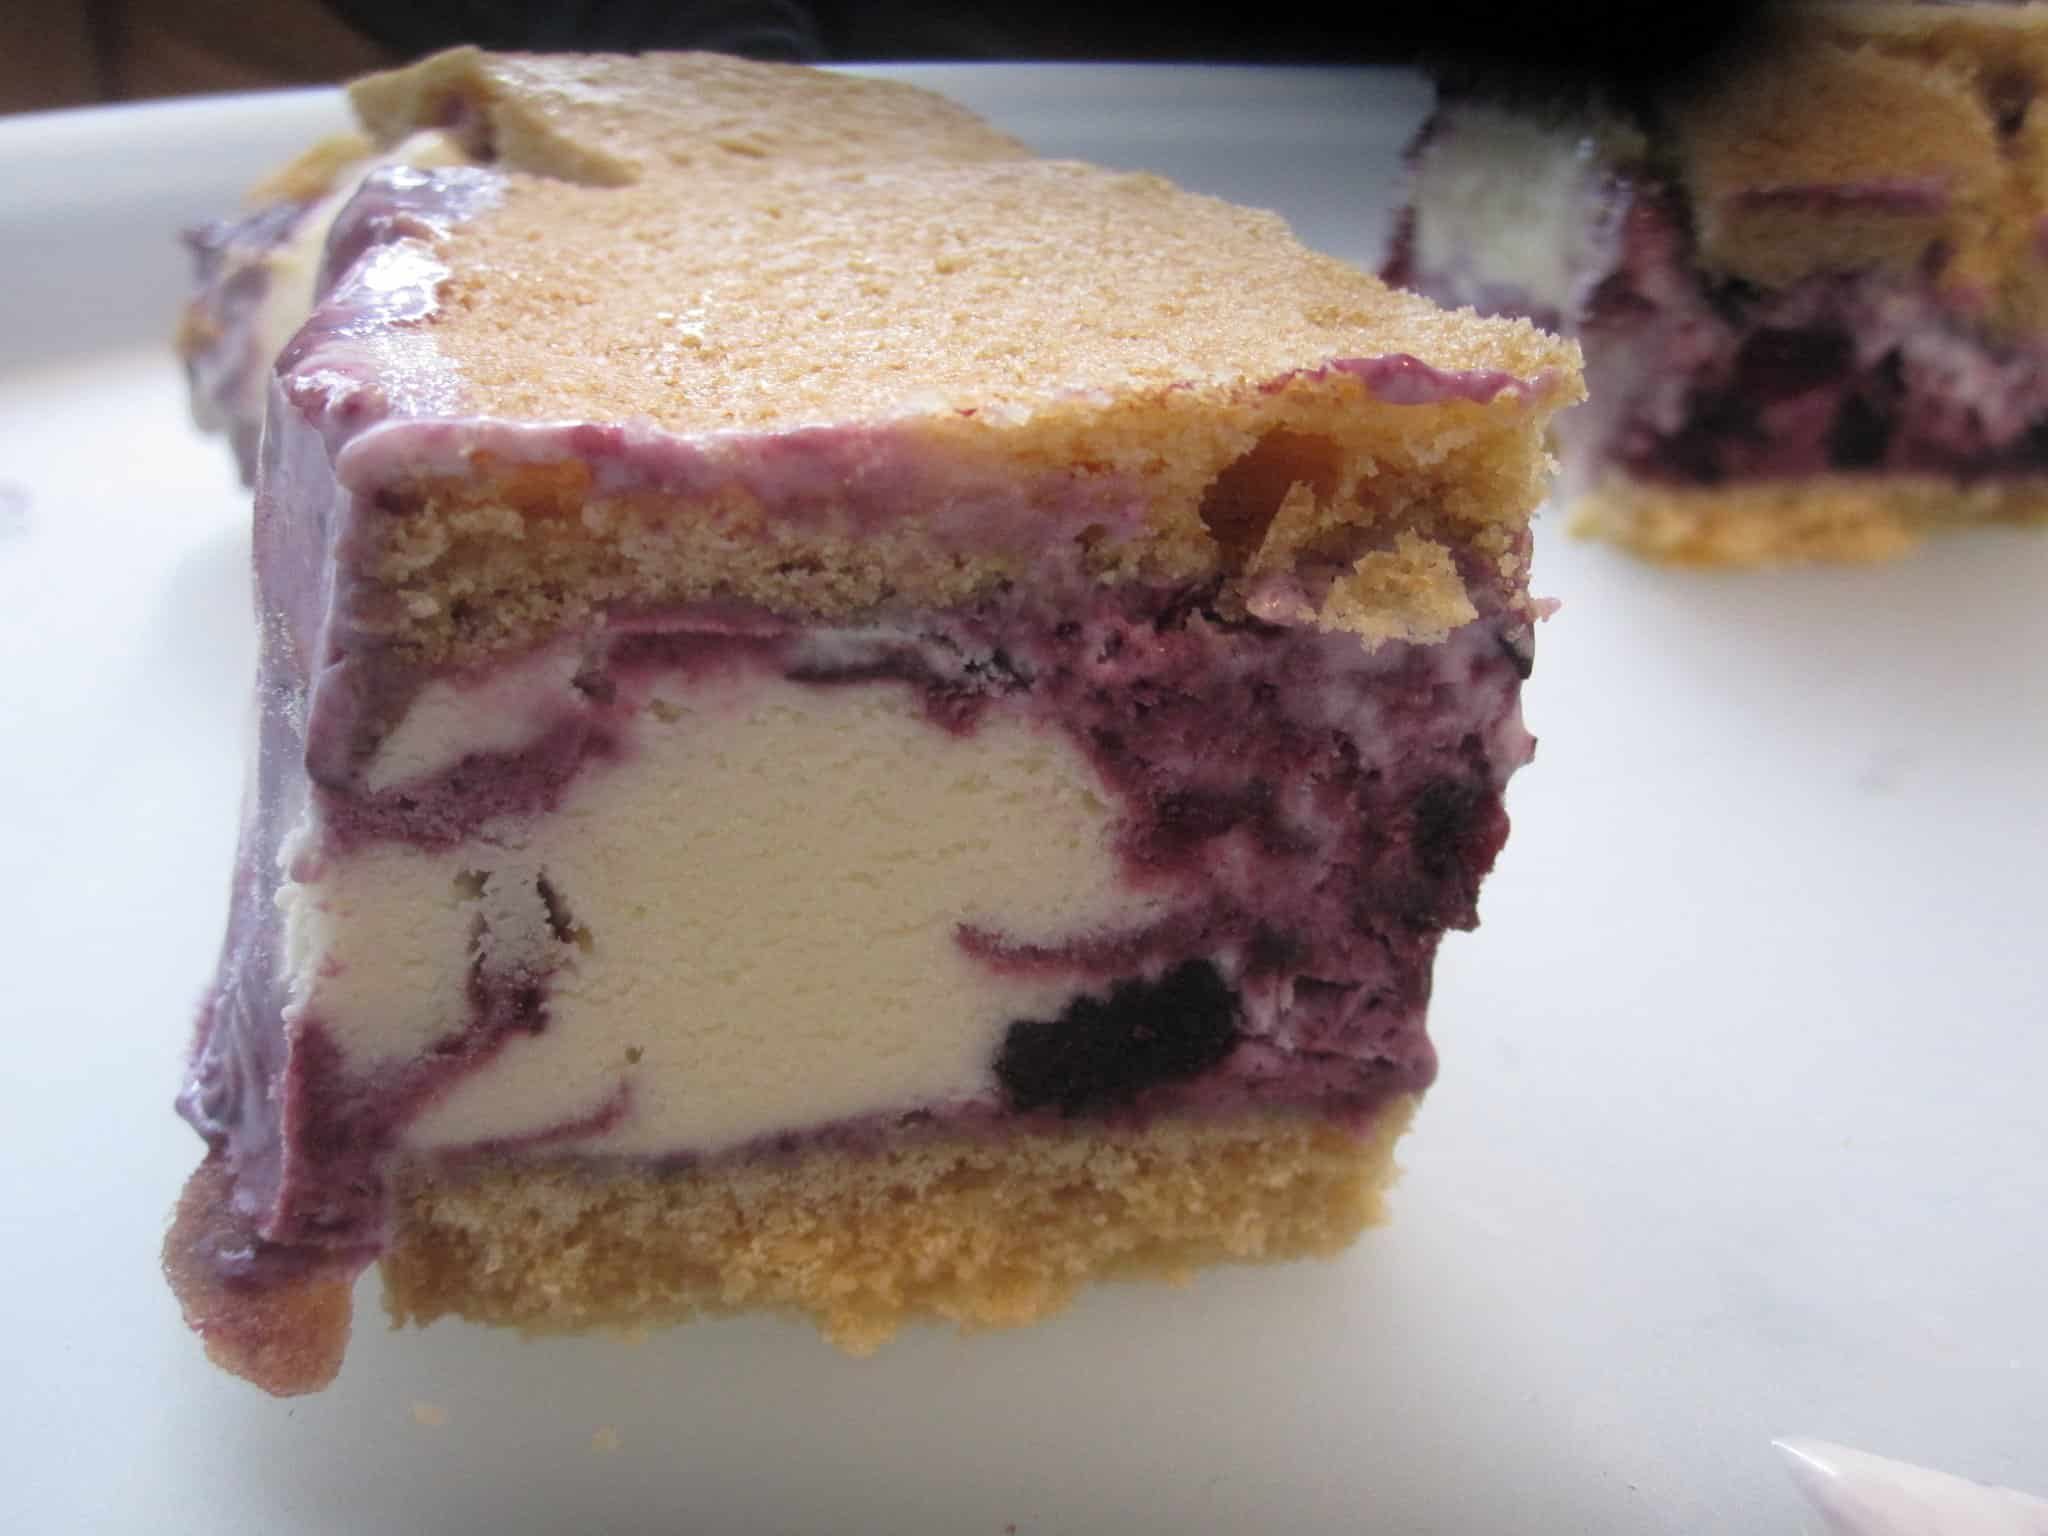 Blueberry ice cream sandwiches